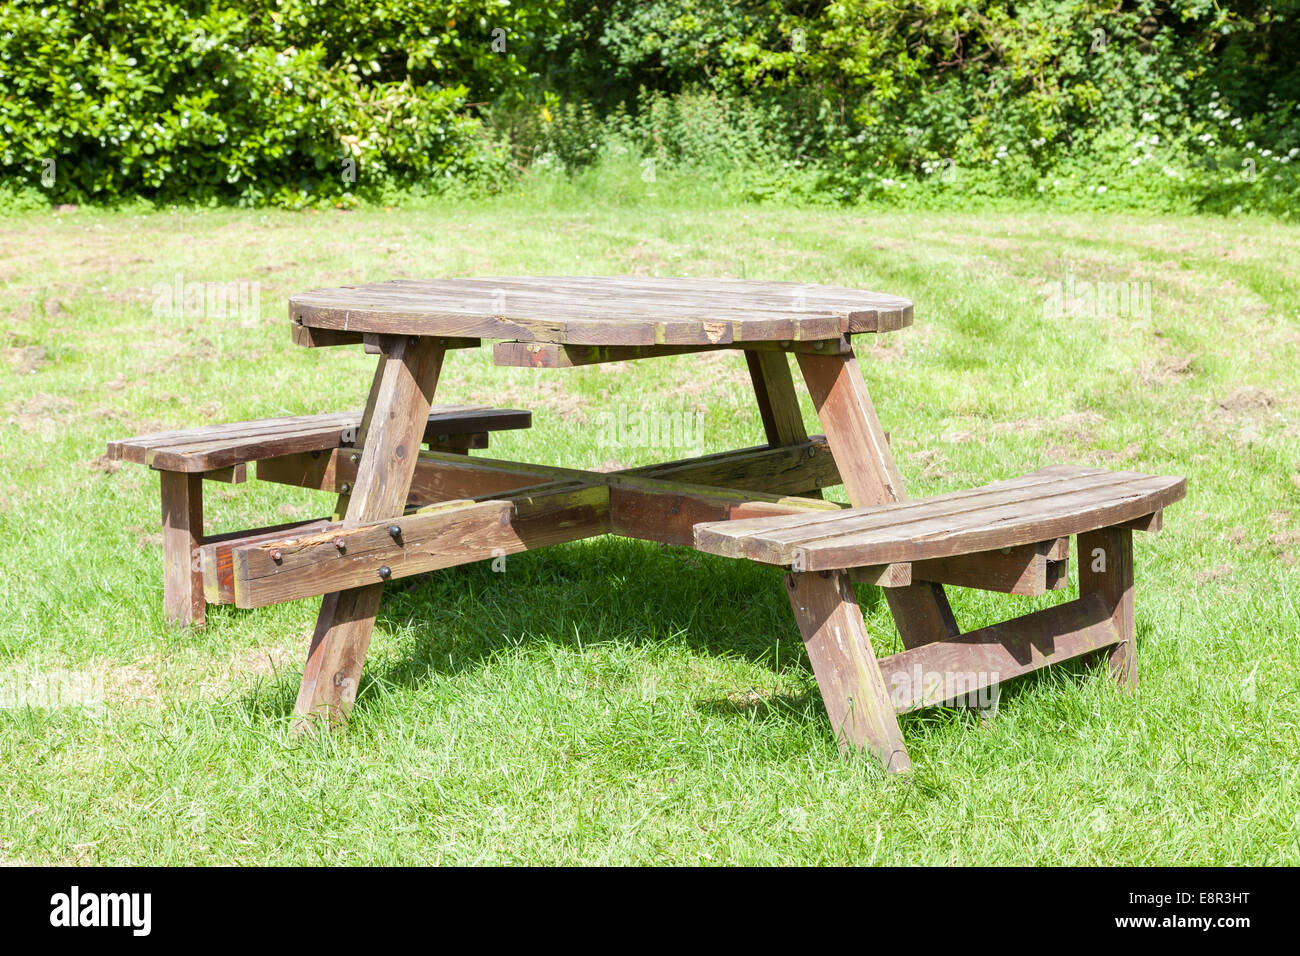 Wooden Park Bench Seating Stockfotos & Wooden Park Bench Seating ...